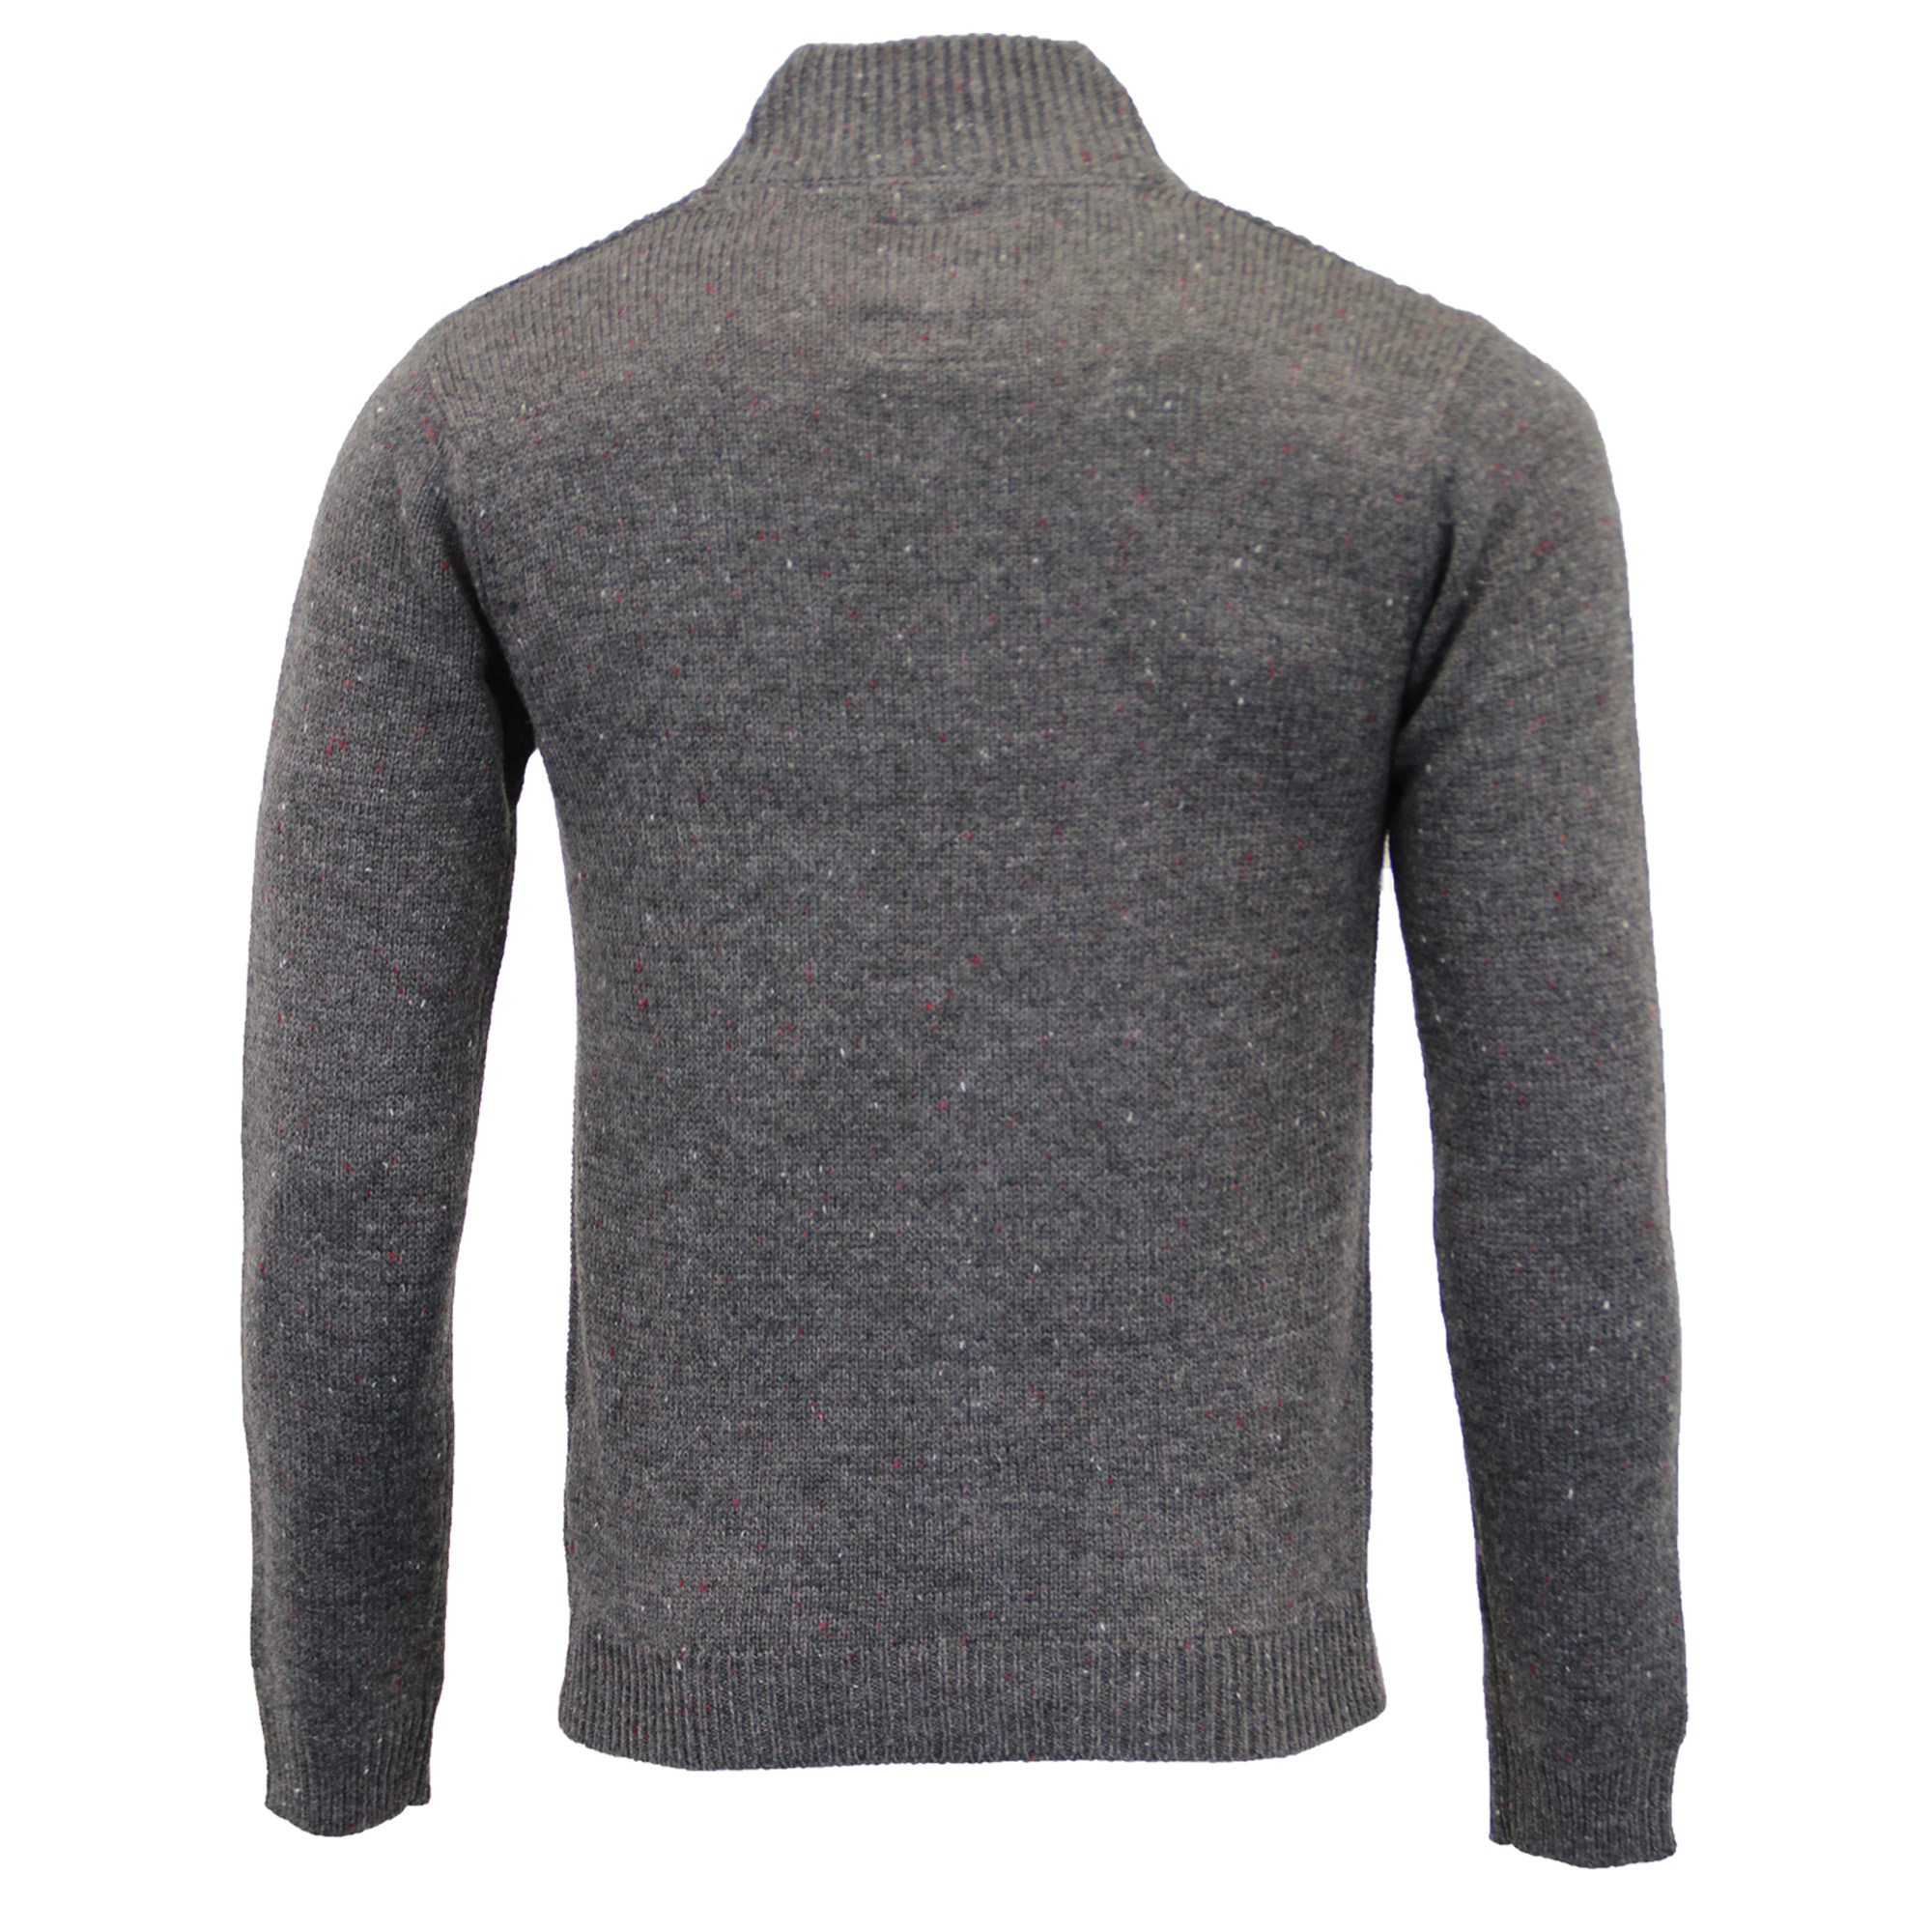 Mens-Wool-Mix-Jumper-Threadbare-Knitted-Sweater-Pullover-Top-Chunky-Zip-Winter thumbnail 9